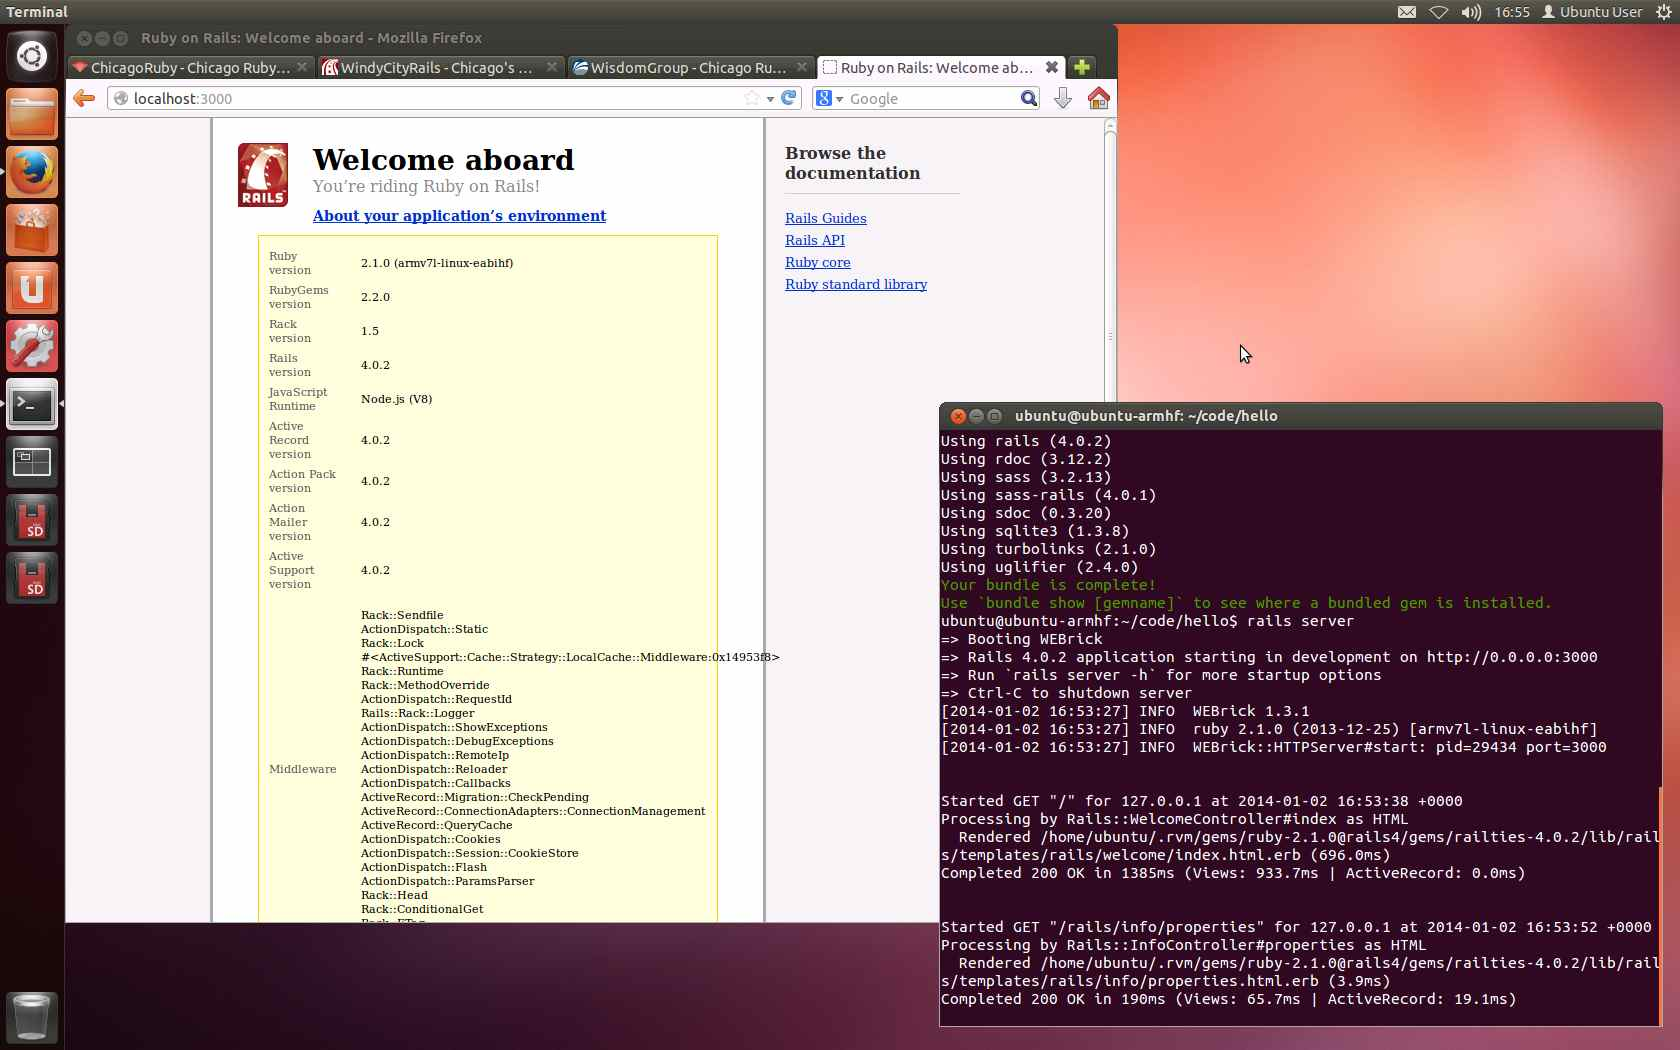 BeagleBone Black running Ubuntu, Ruby, & Rails.